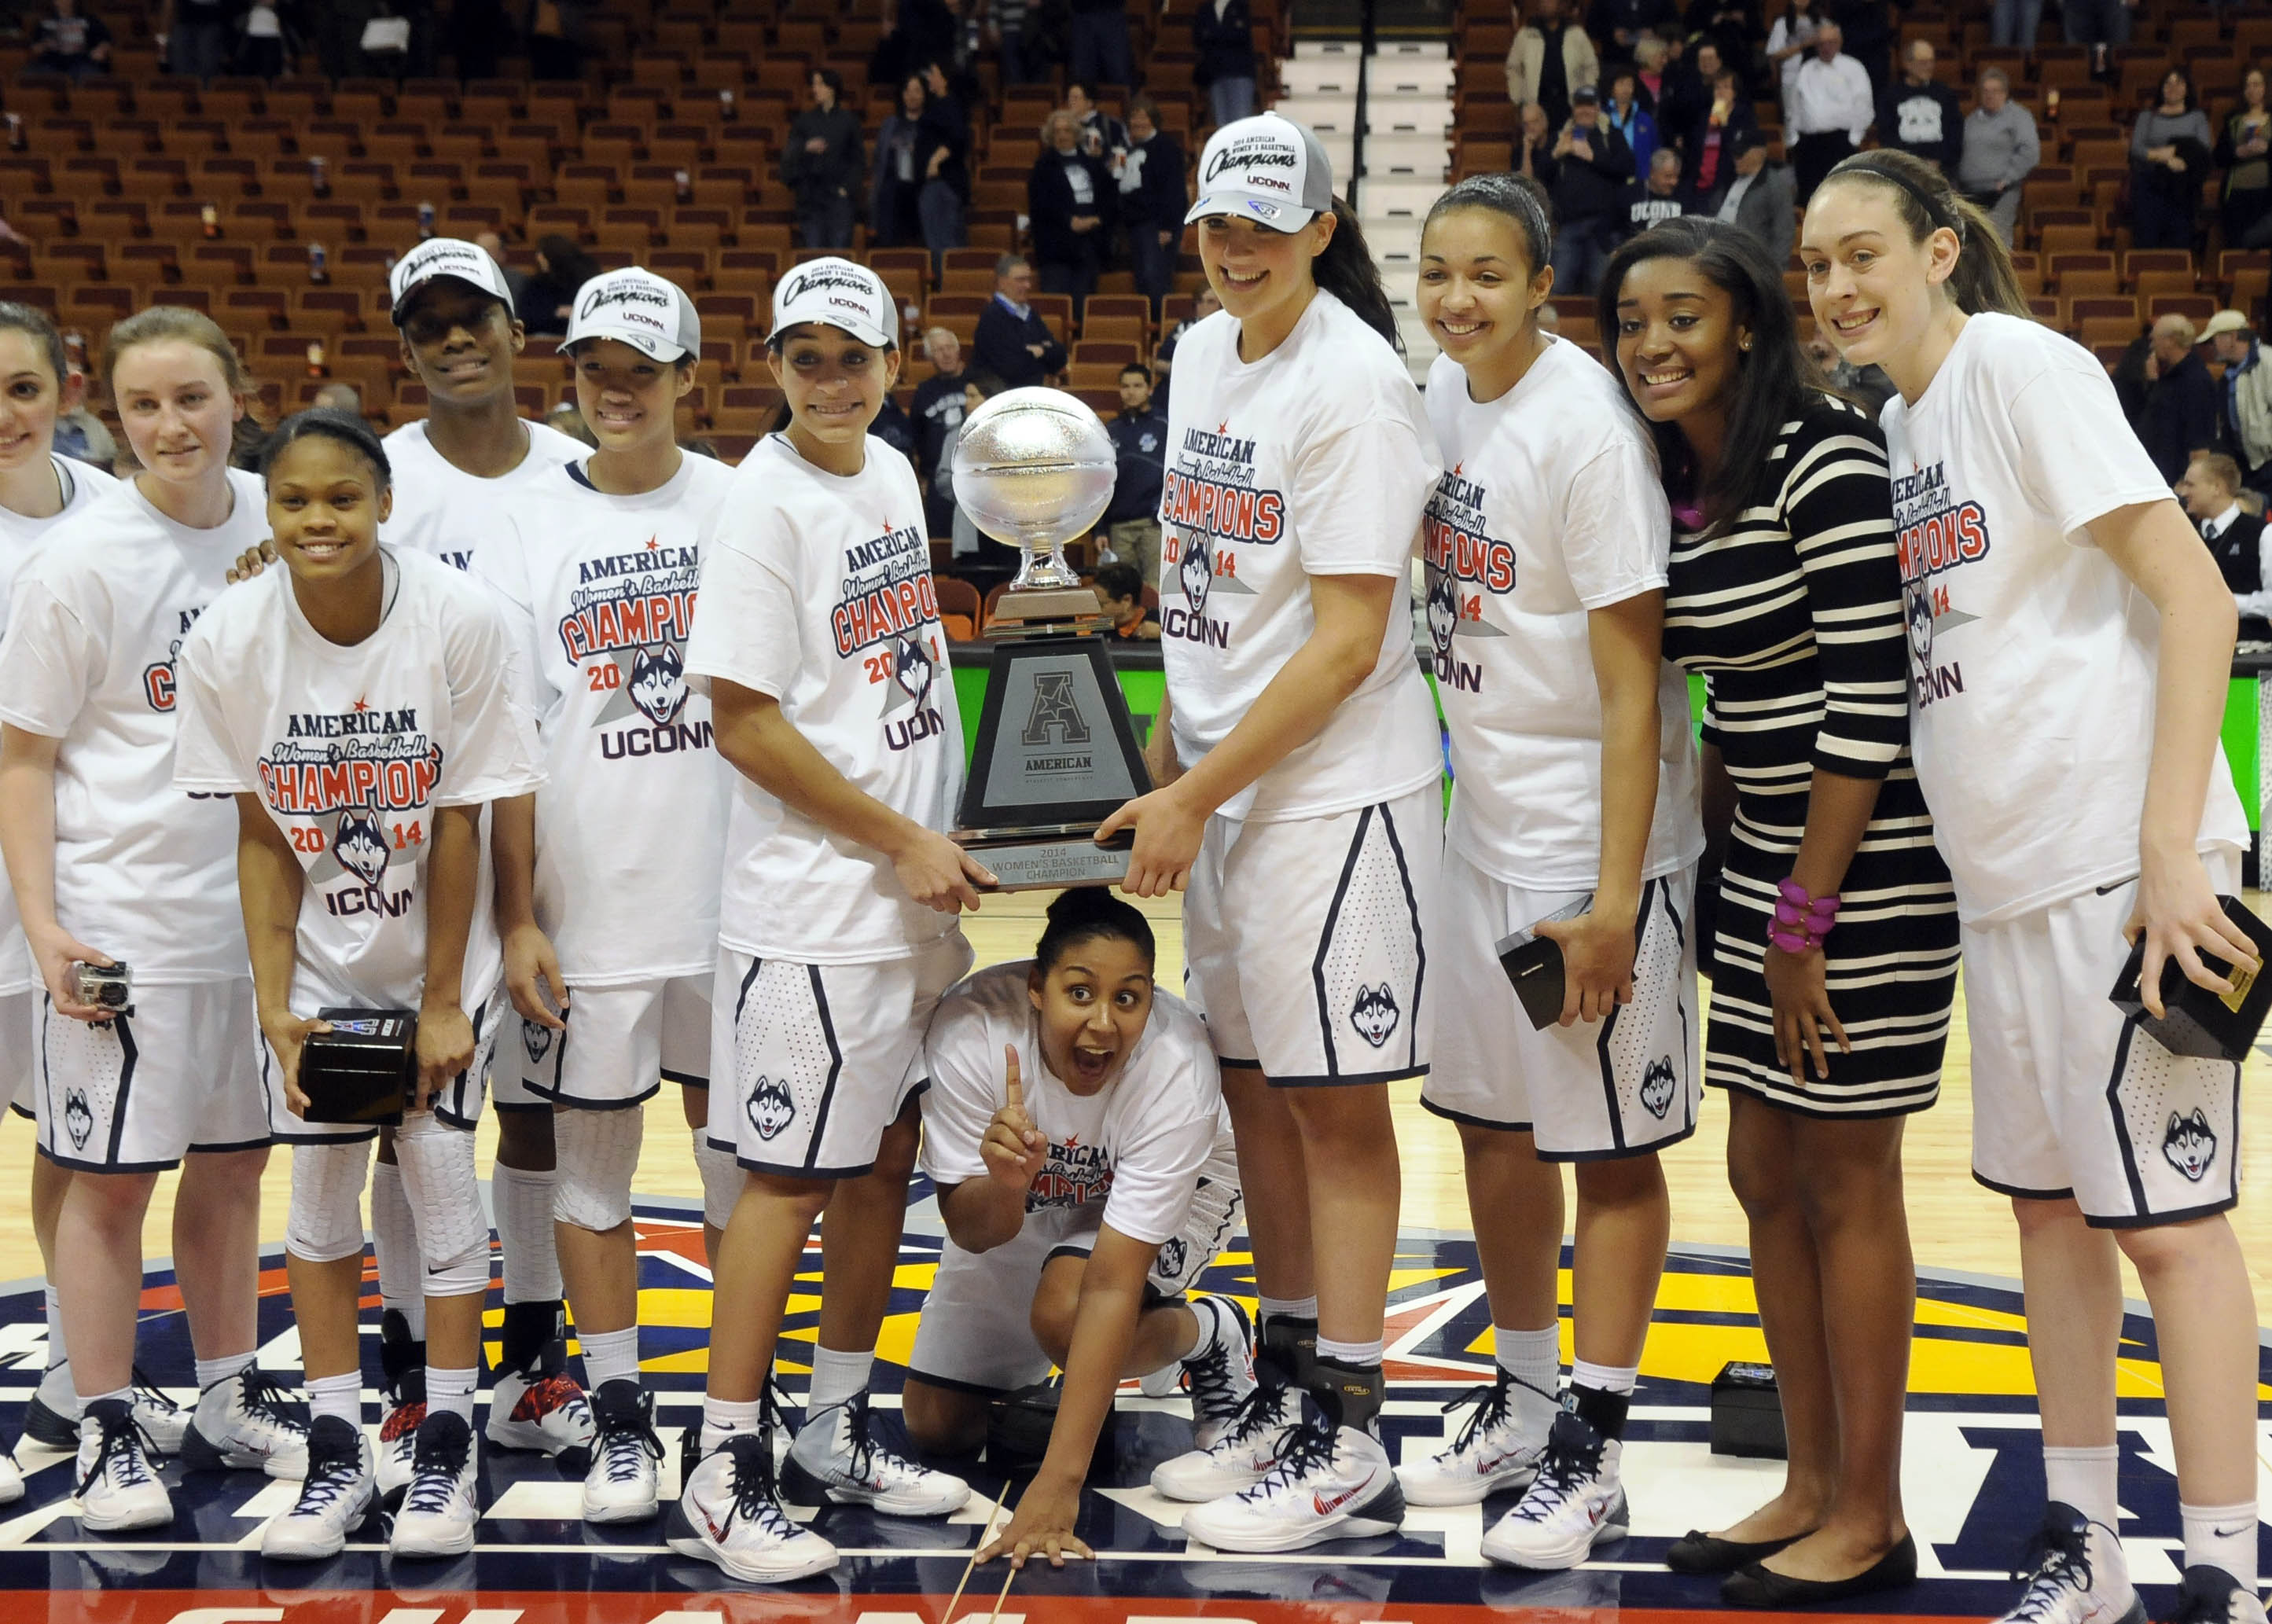 UNCASVILLE 03/10/14  The UConn women pose with the trophy after winning the American Athletic Conference Championship game at the Mohegan Sun Arena Monday. UConn defeated Louisville, 72-52.   CLOE POISSON|cpoisson@courant.com